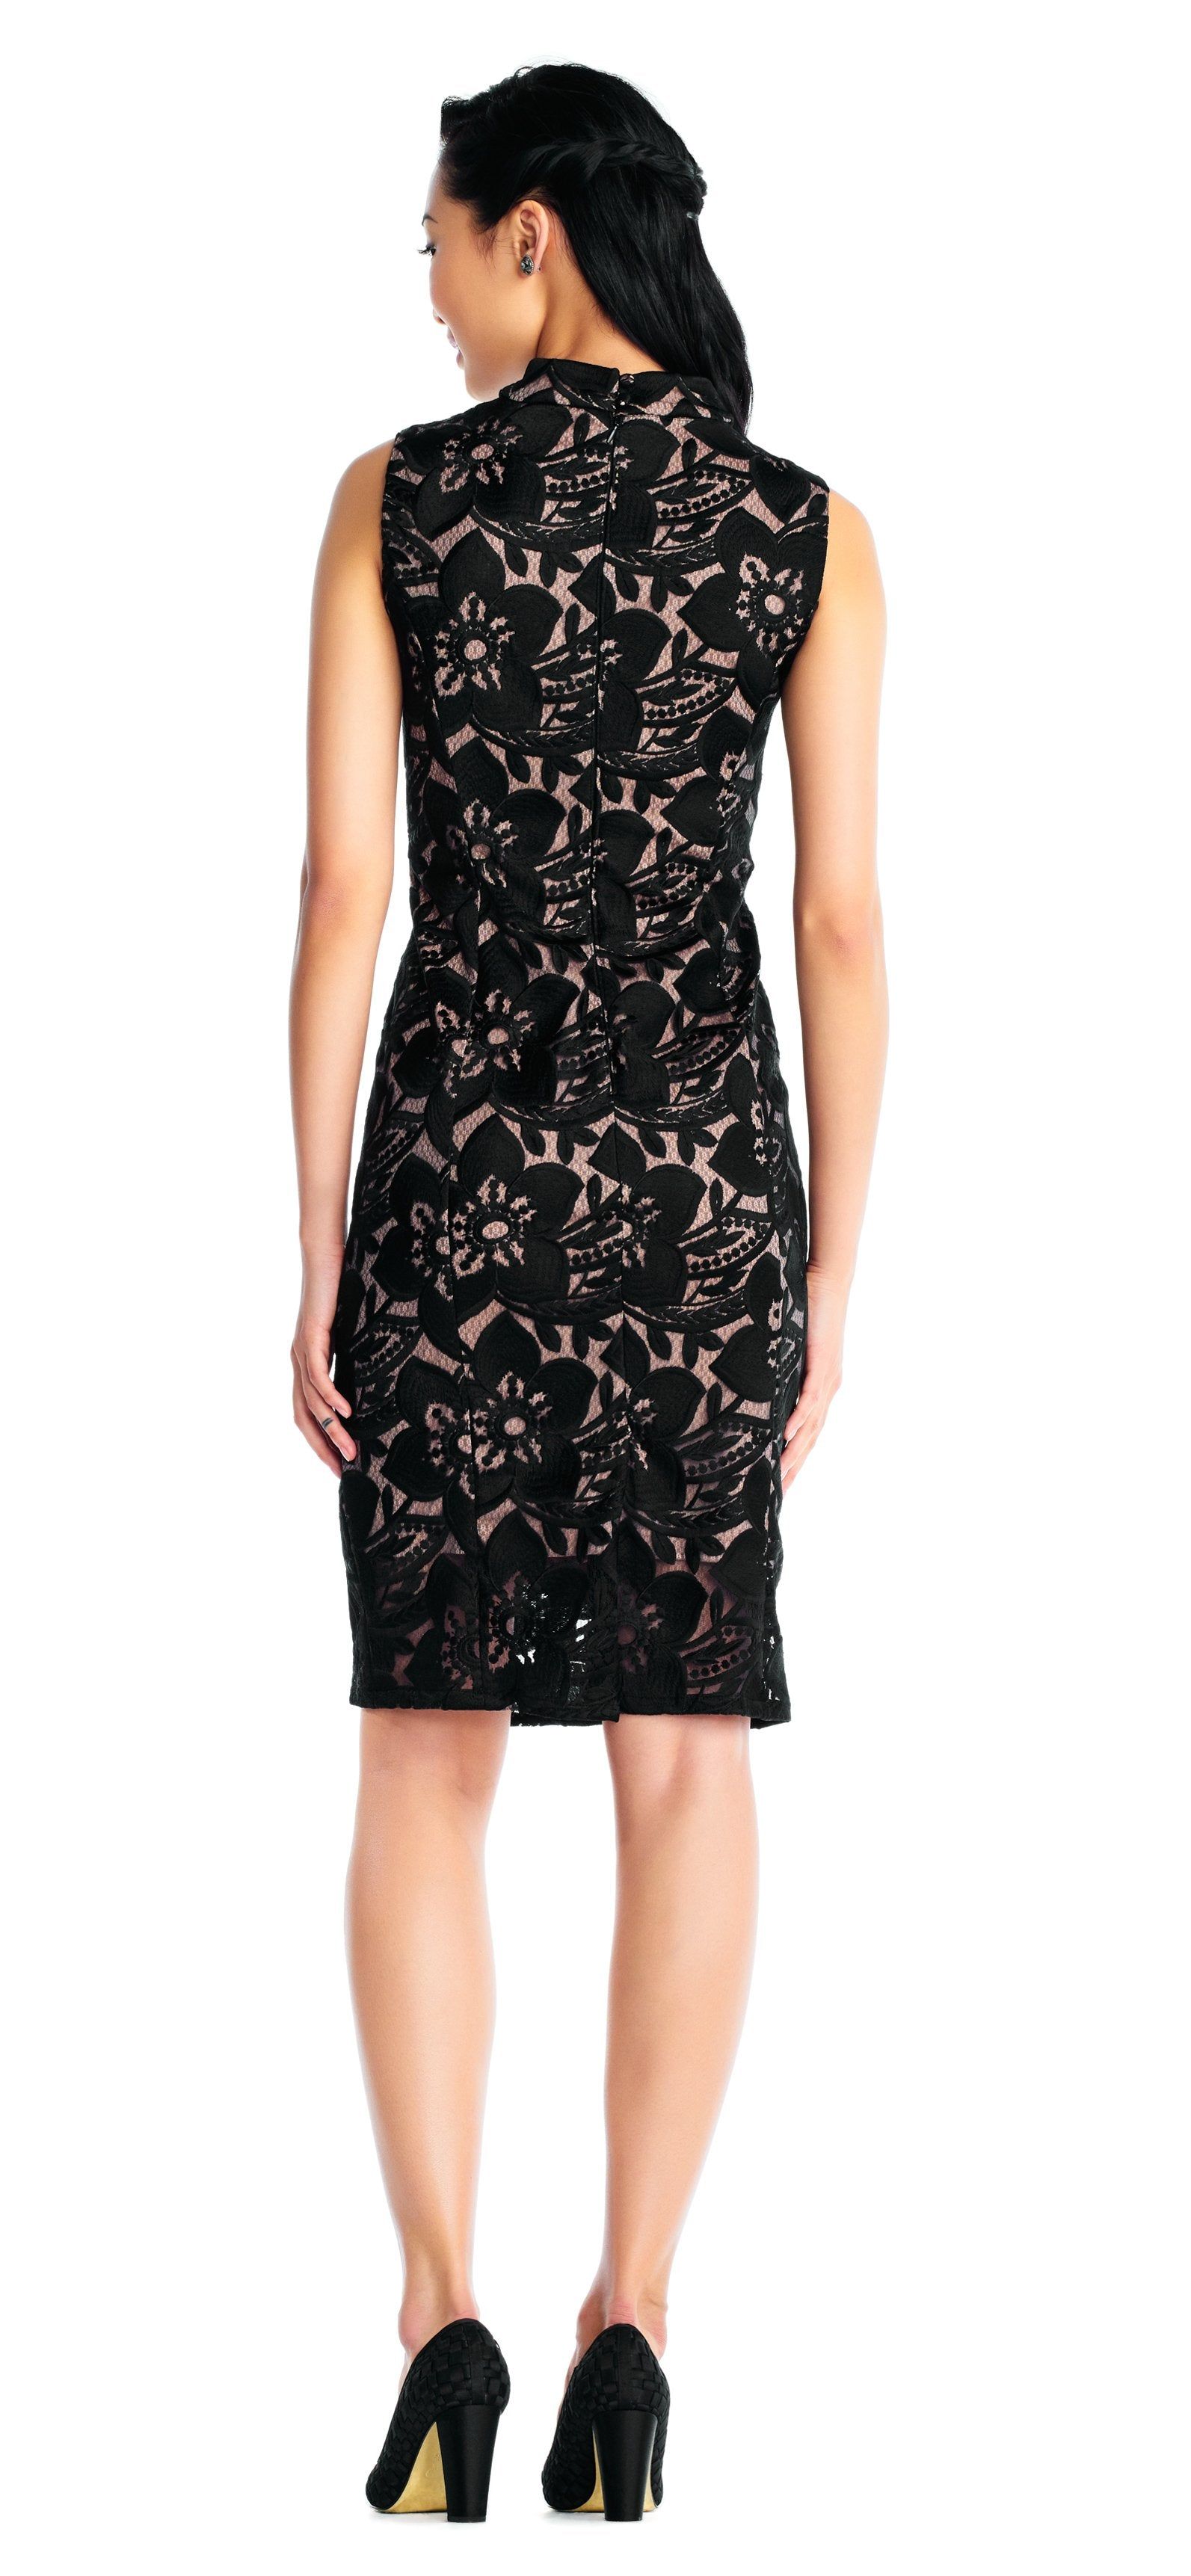 Adrianna Papell - AP1D101525 High Neck Floral Cocktail Dress In Black